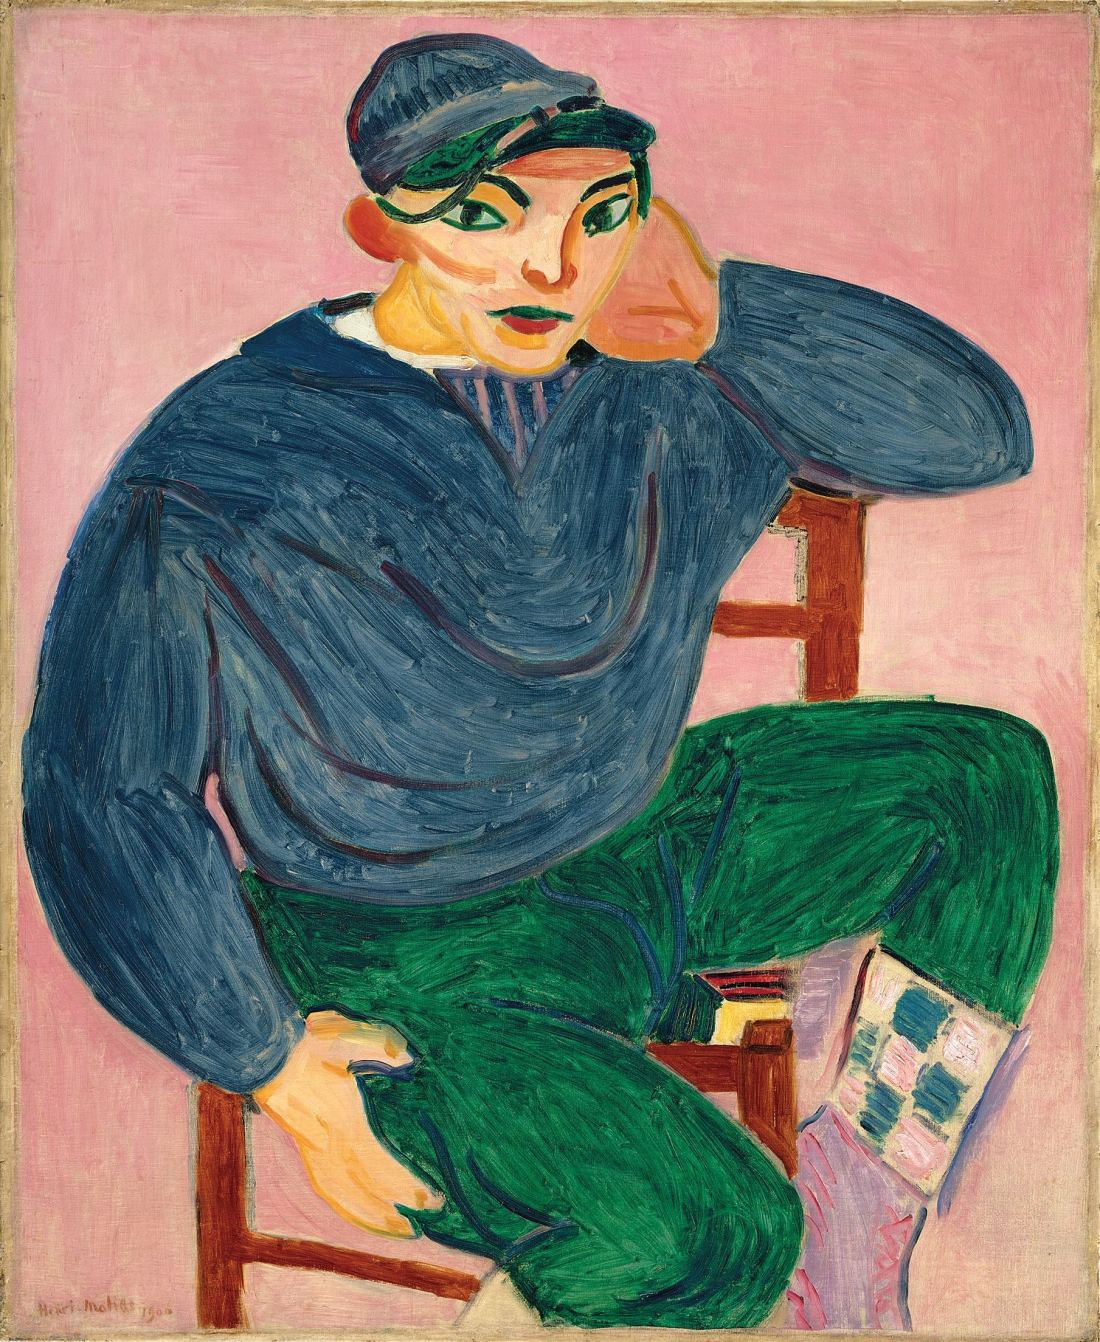 Henri Matisse, Young Sailor II, 1906. Collection of the Metropolitan Museum of Art, New York.